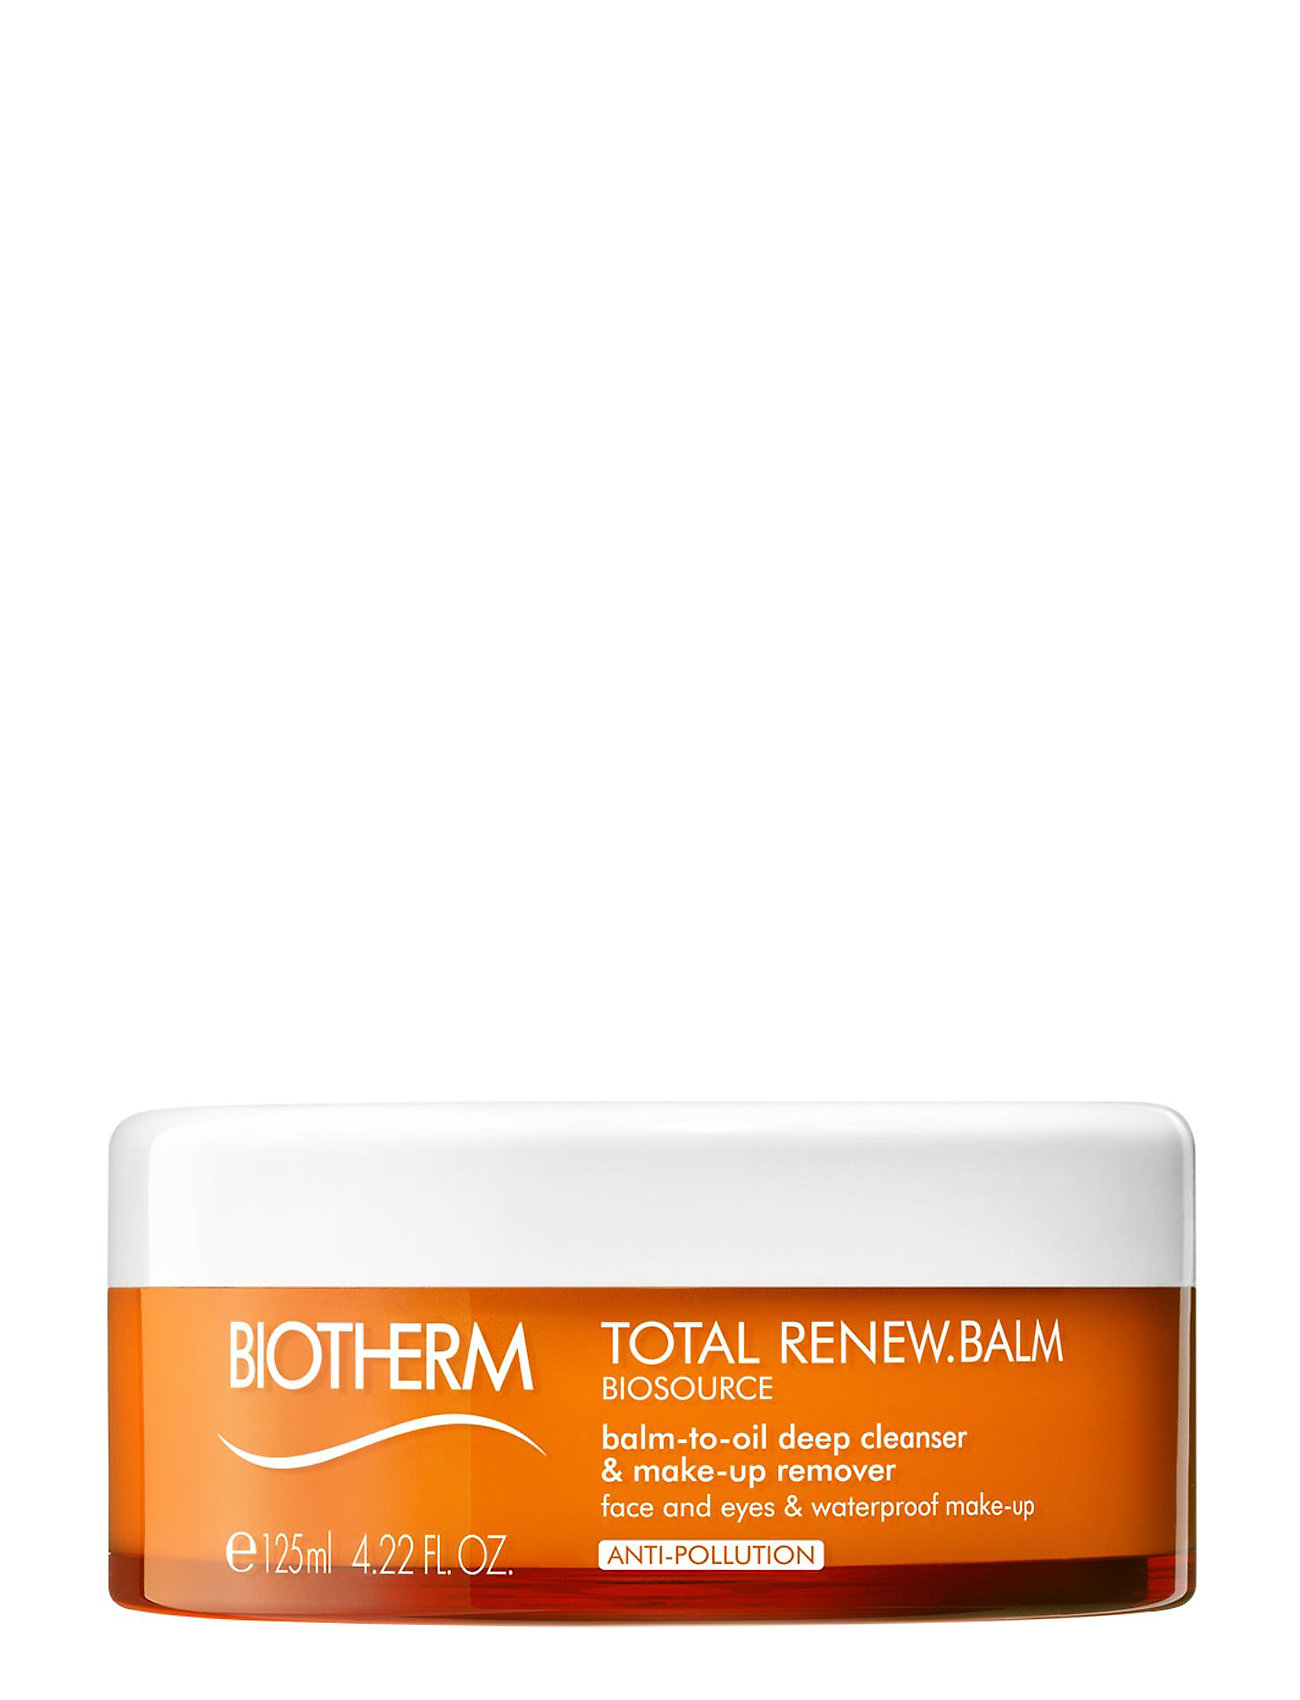 Biosource total renew balm-to-oil deep cleanser & makeup rem fra biotherm på boozt.com dk